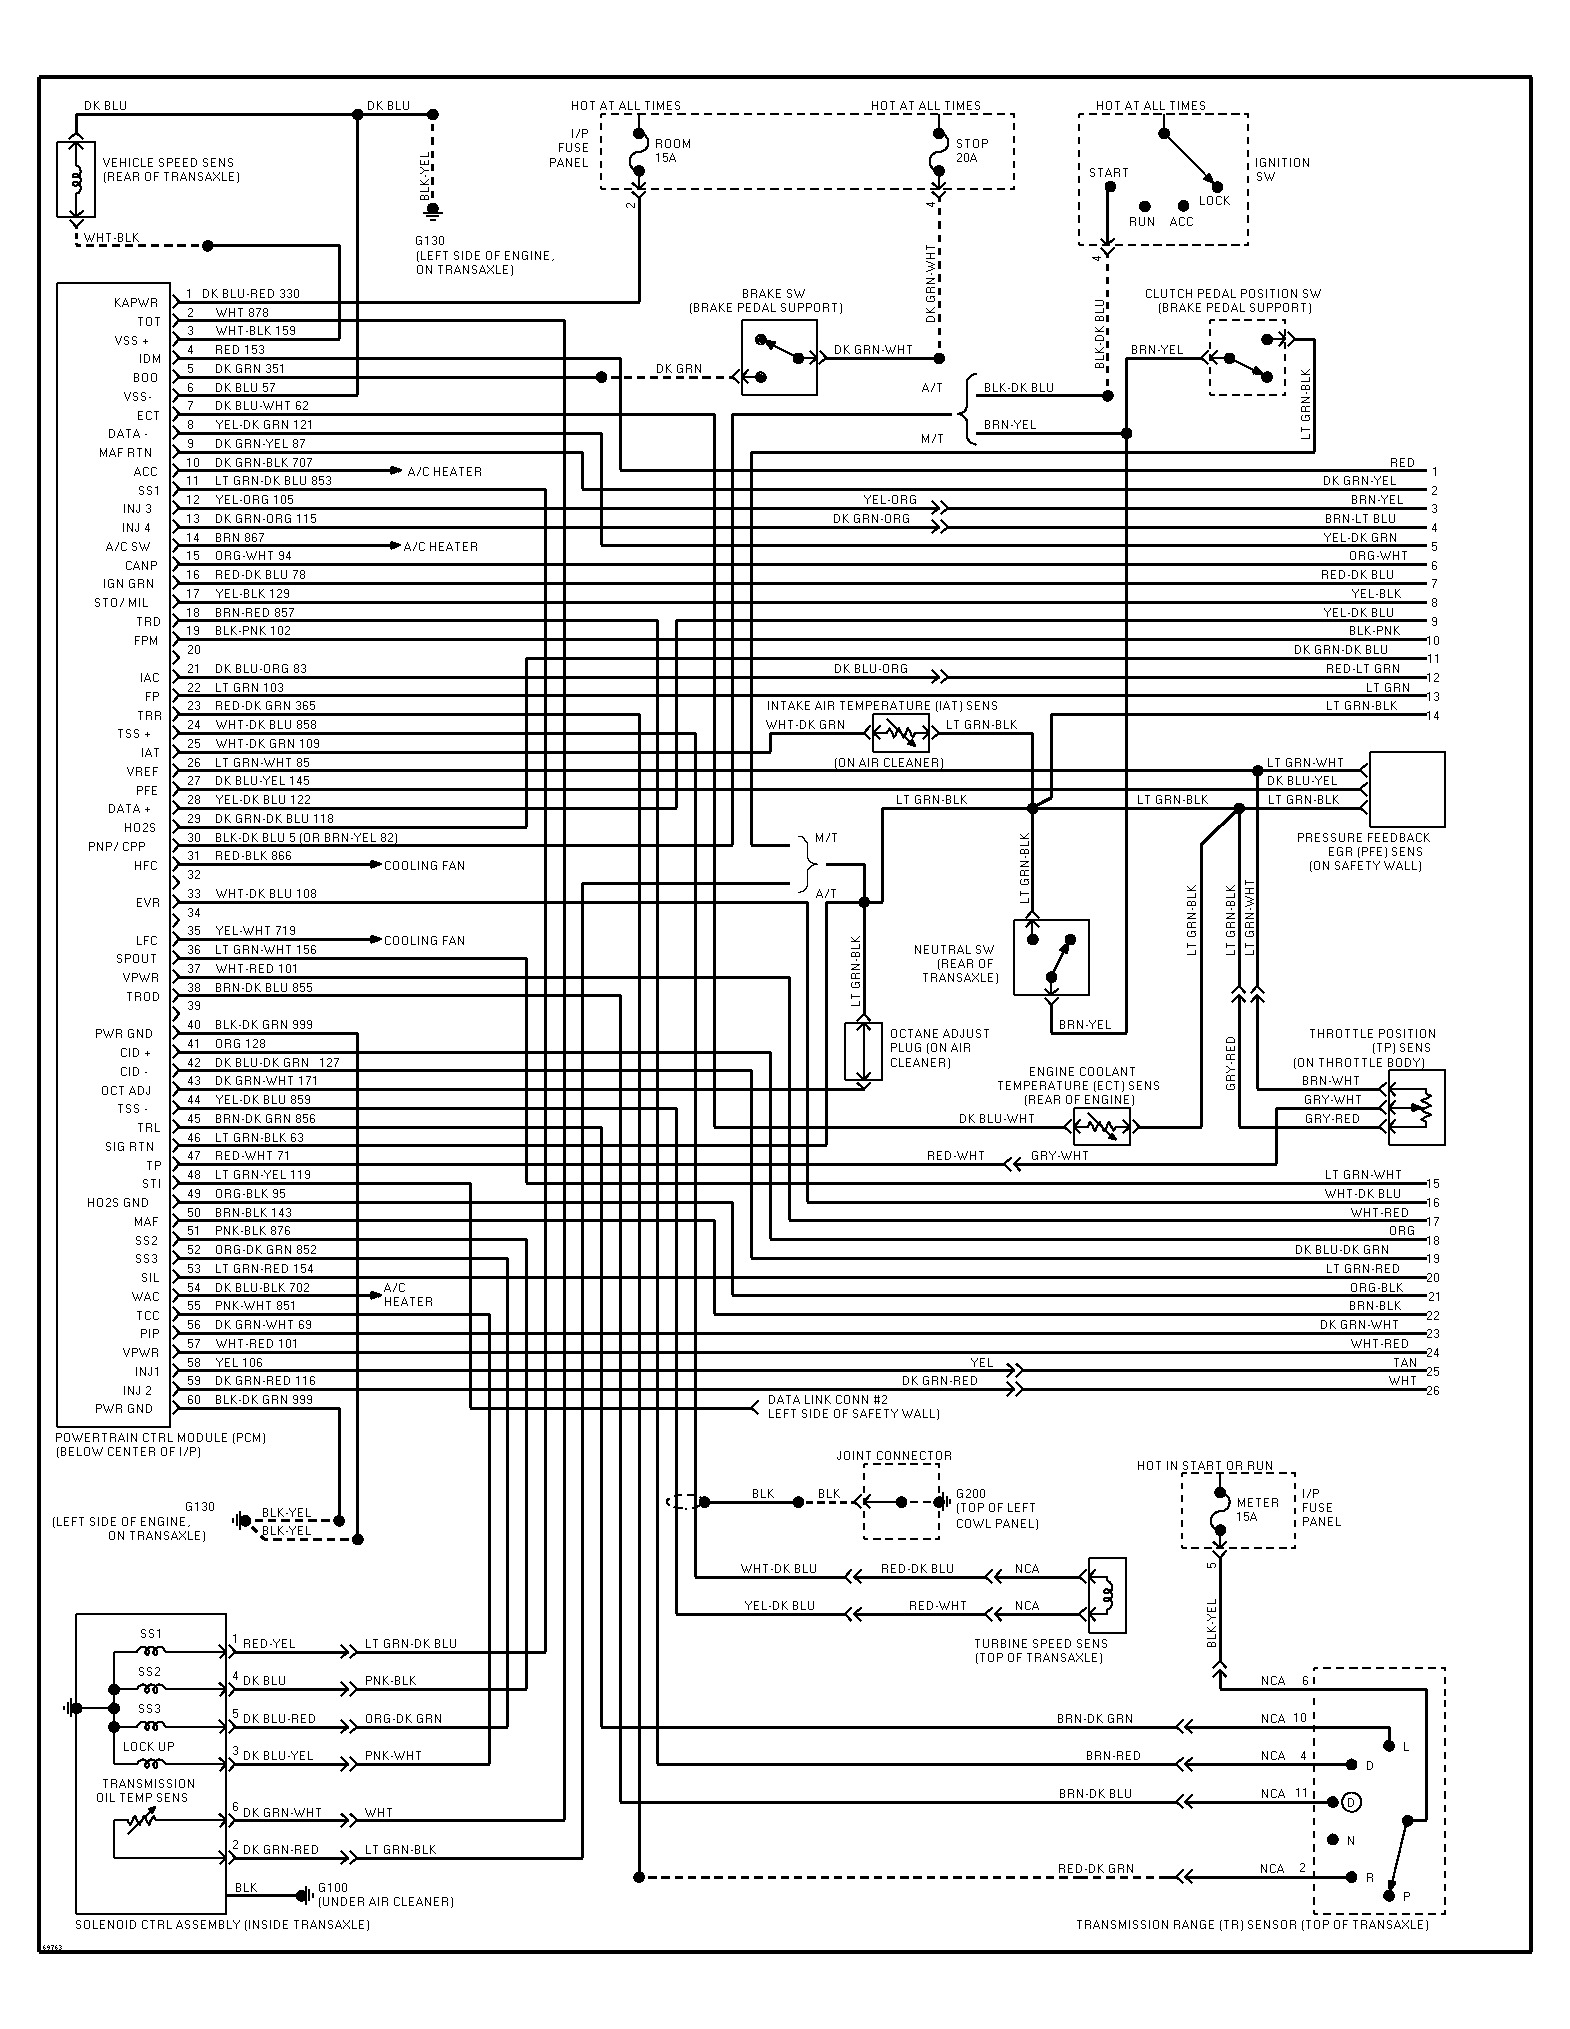 original 1995 ford escort wiring diagram i need to find a color coded ford escort wiring diagram at readyjetset.co